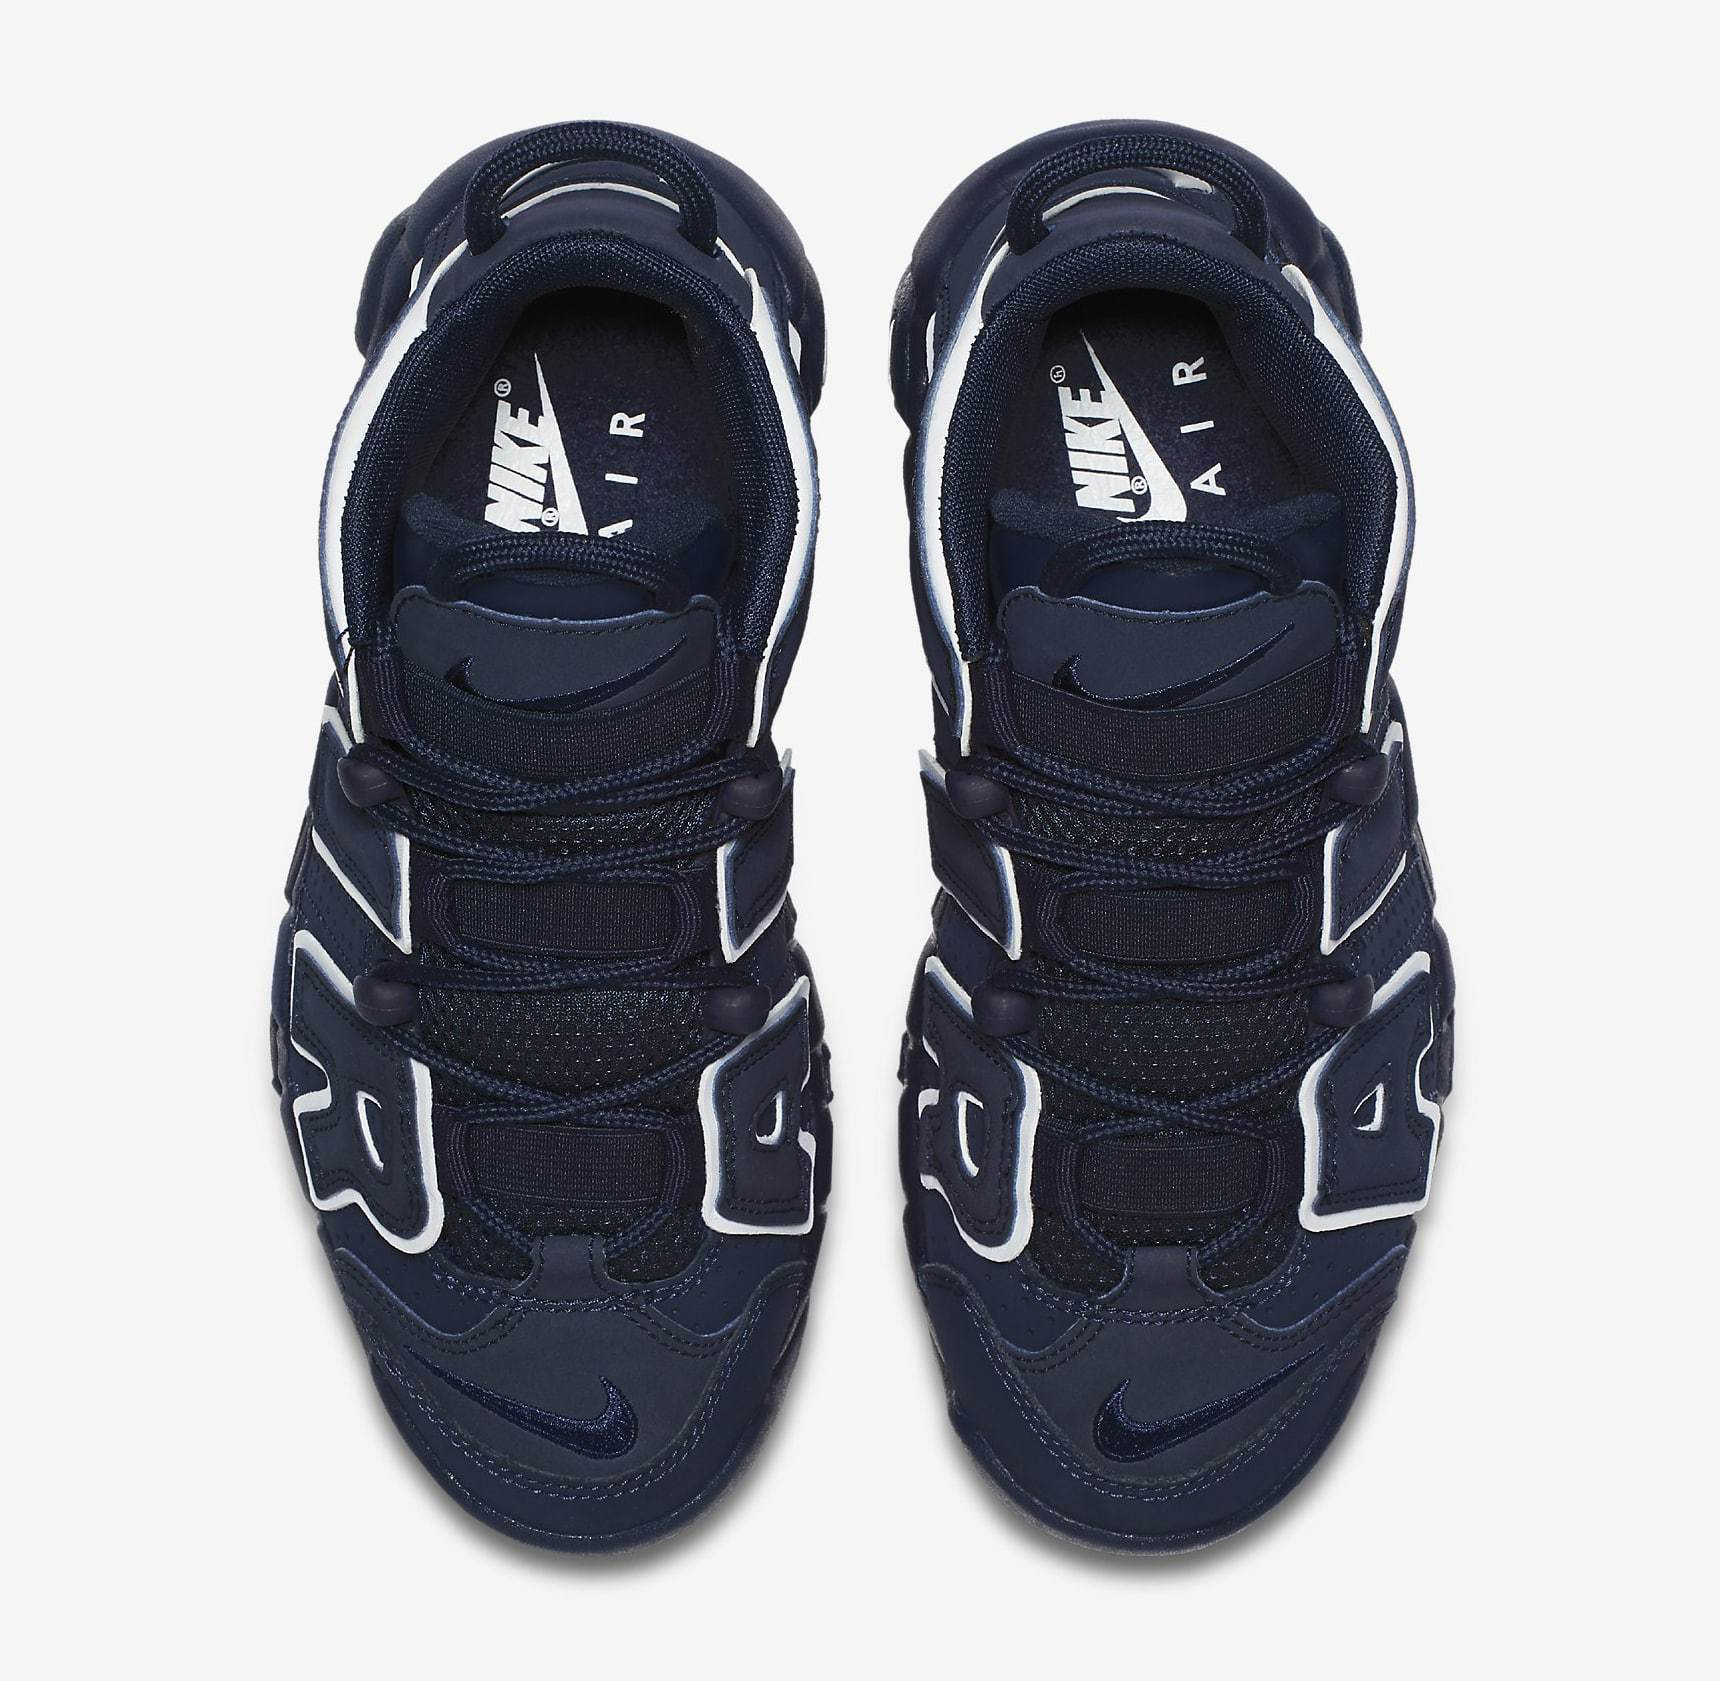 FW17 NIKE AIR MORE UPTEMPO GS OBSIDIAN 紺 22.5-25cm 送料無料